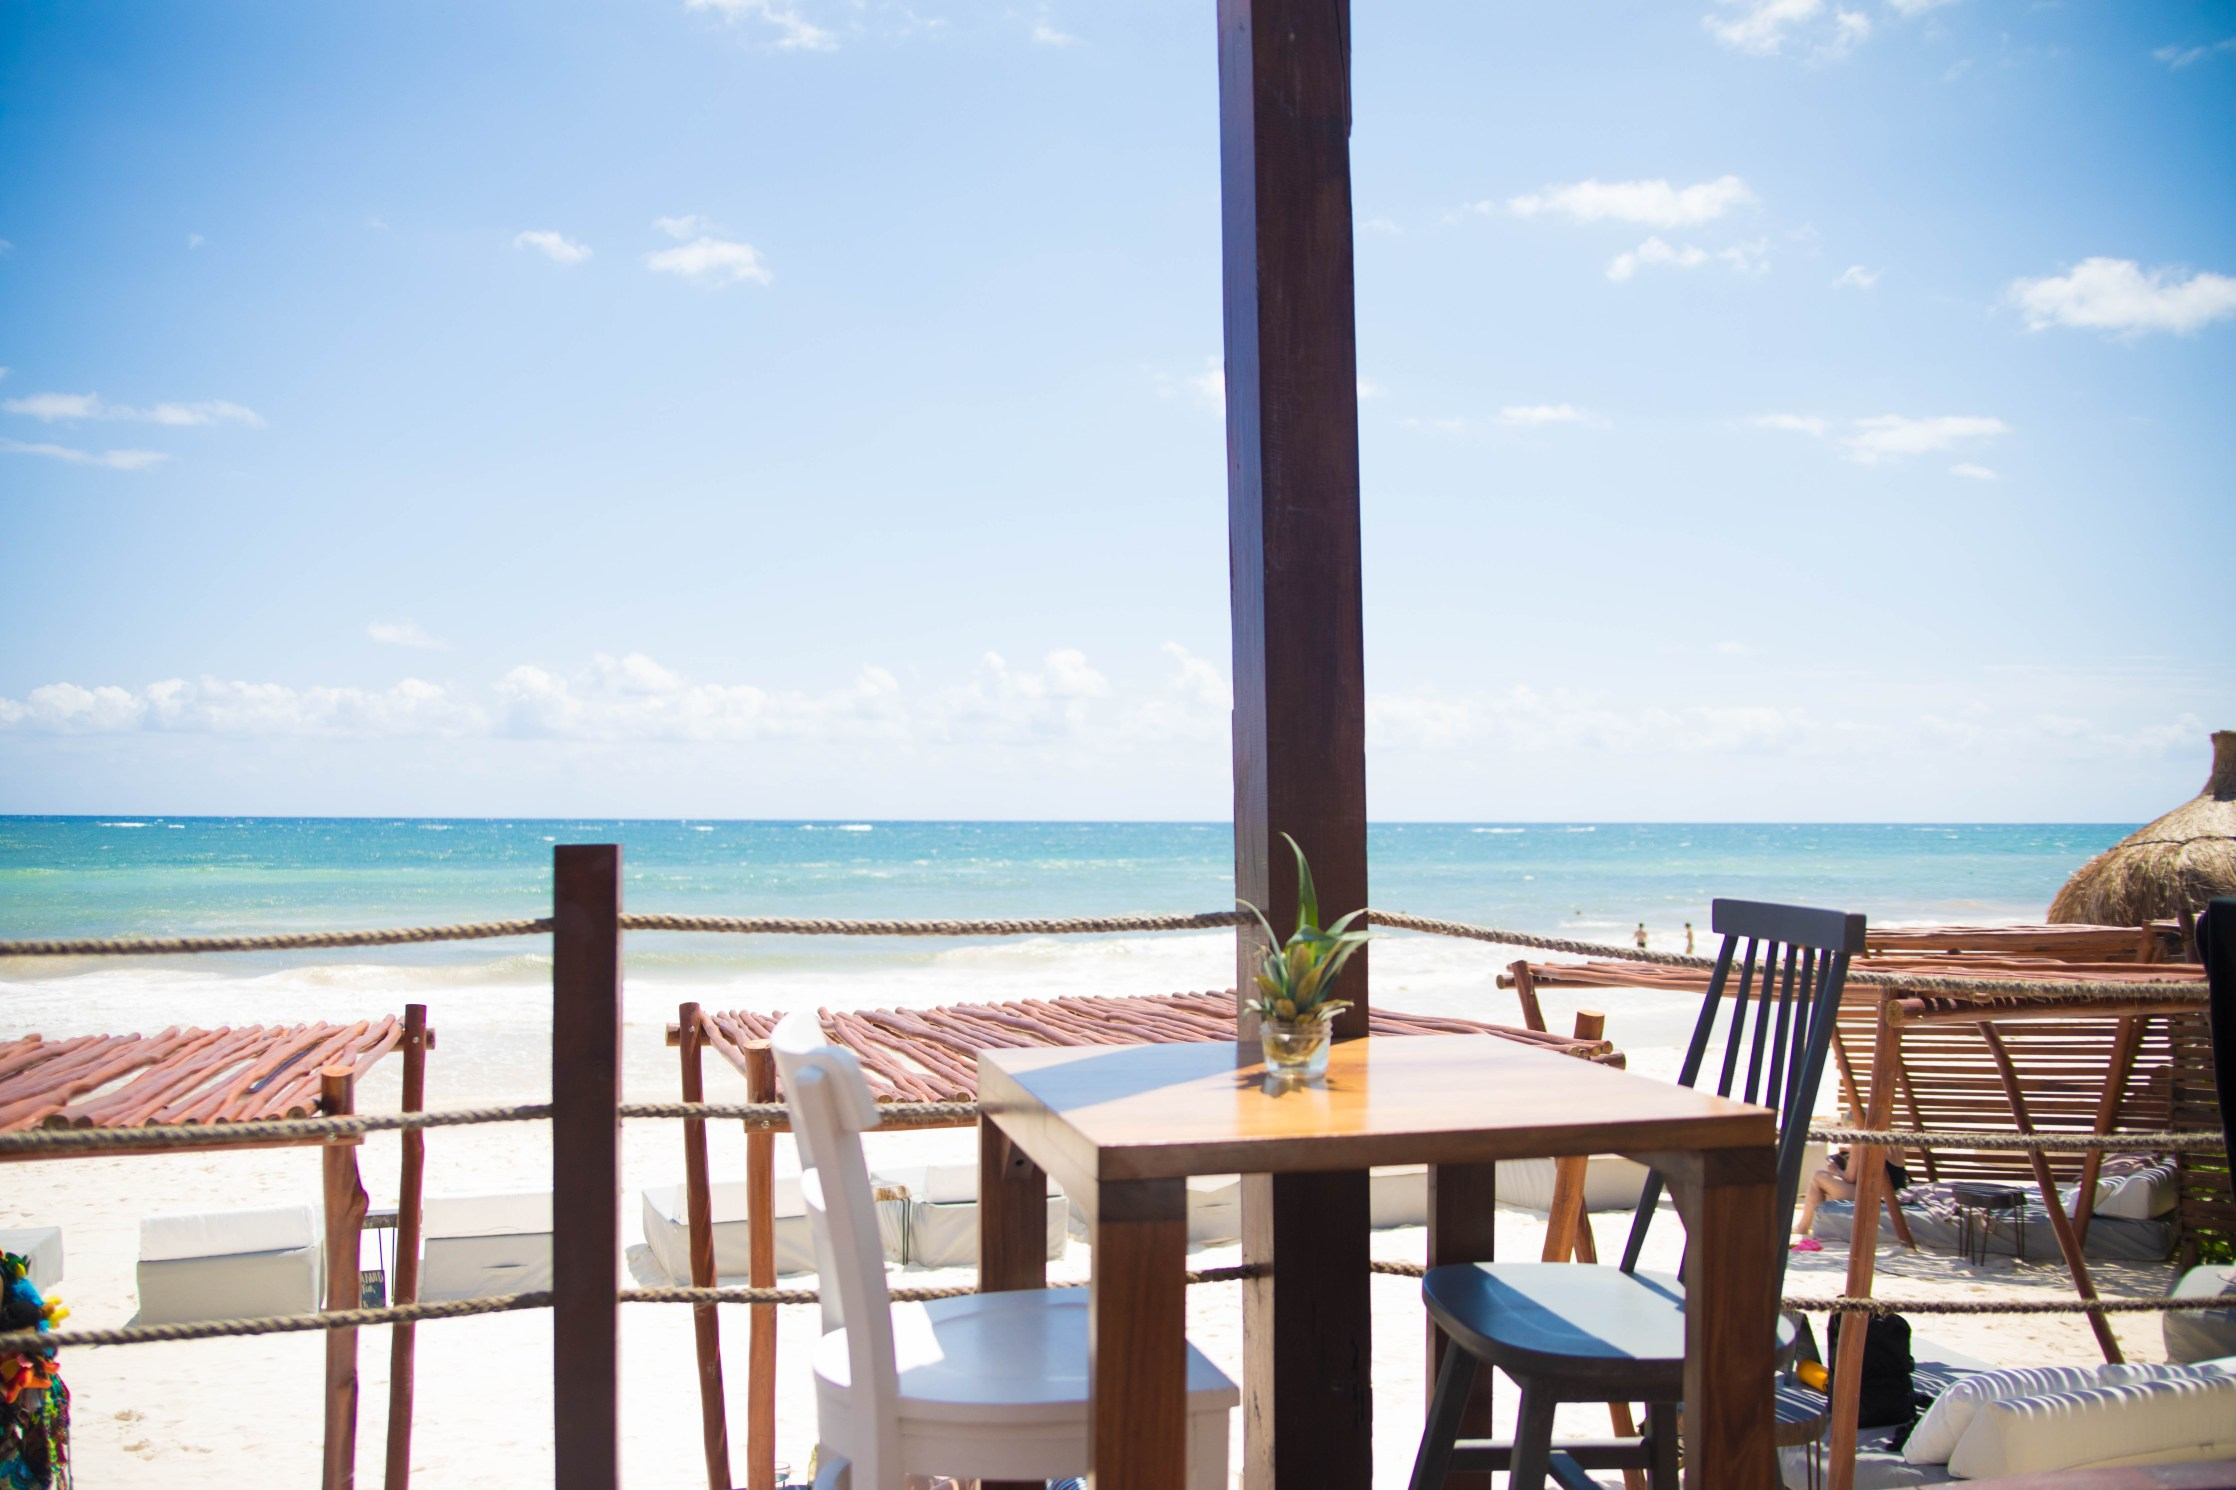 The Real Coconut Tulum at Sanará Resort Luxury Restaurants of the World